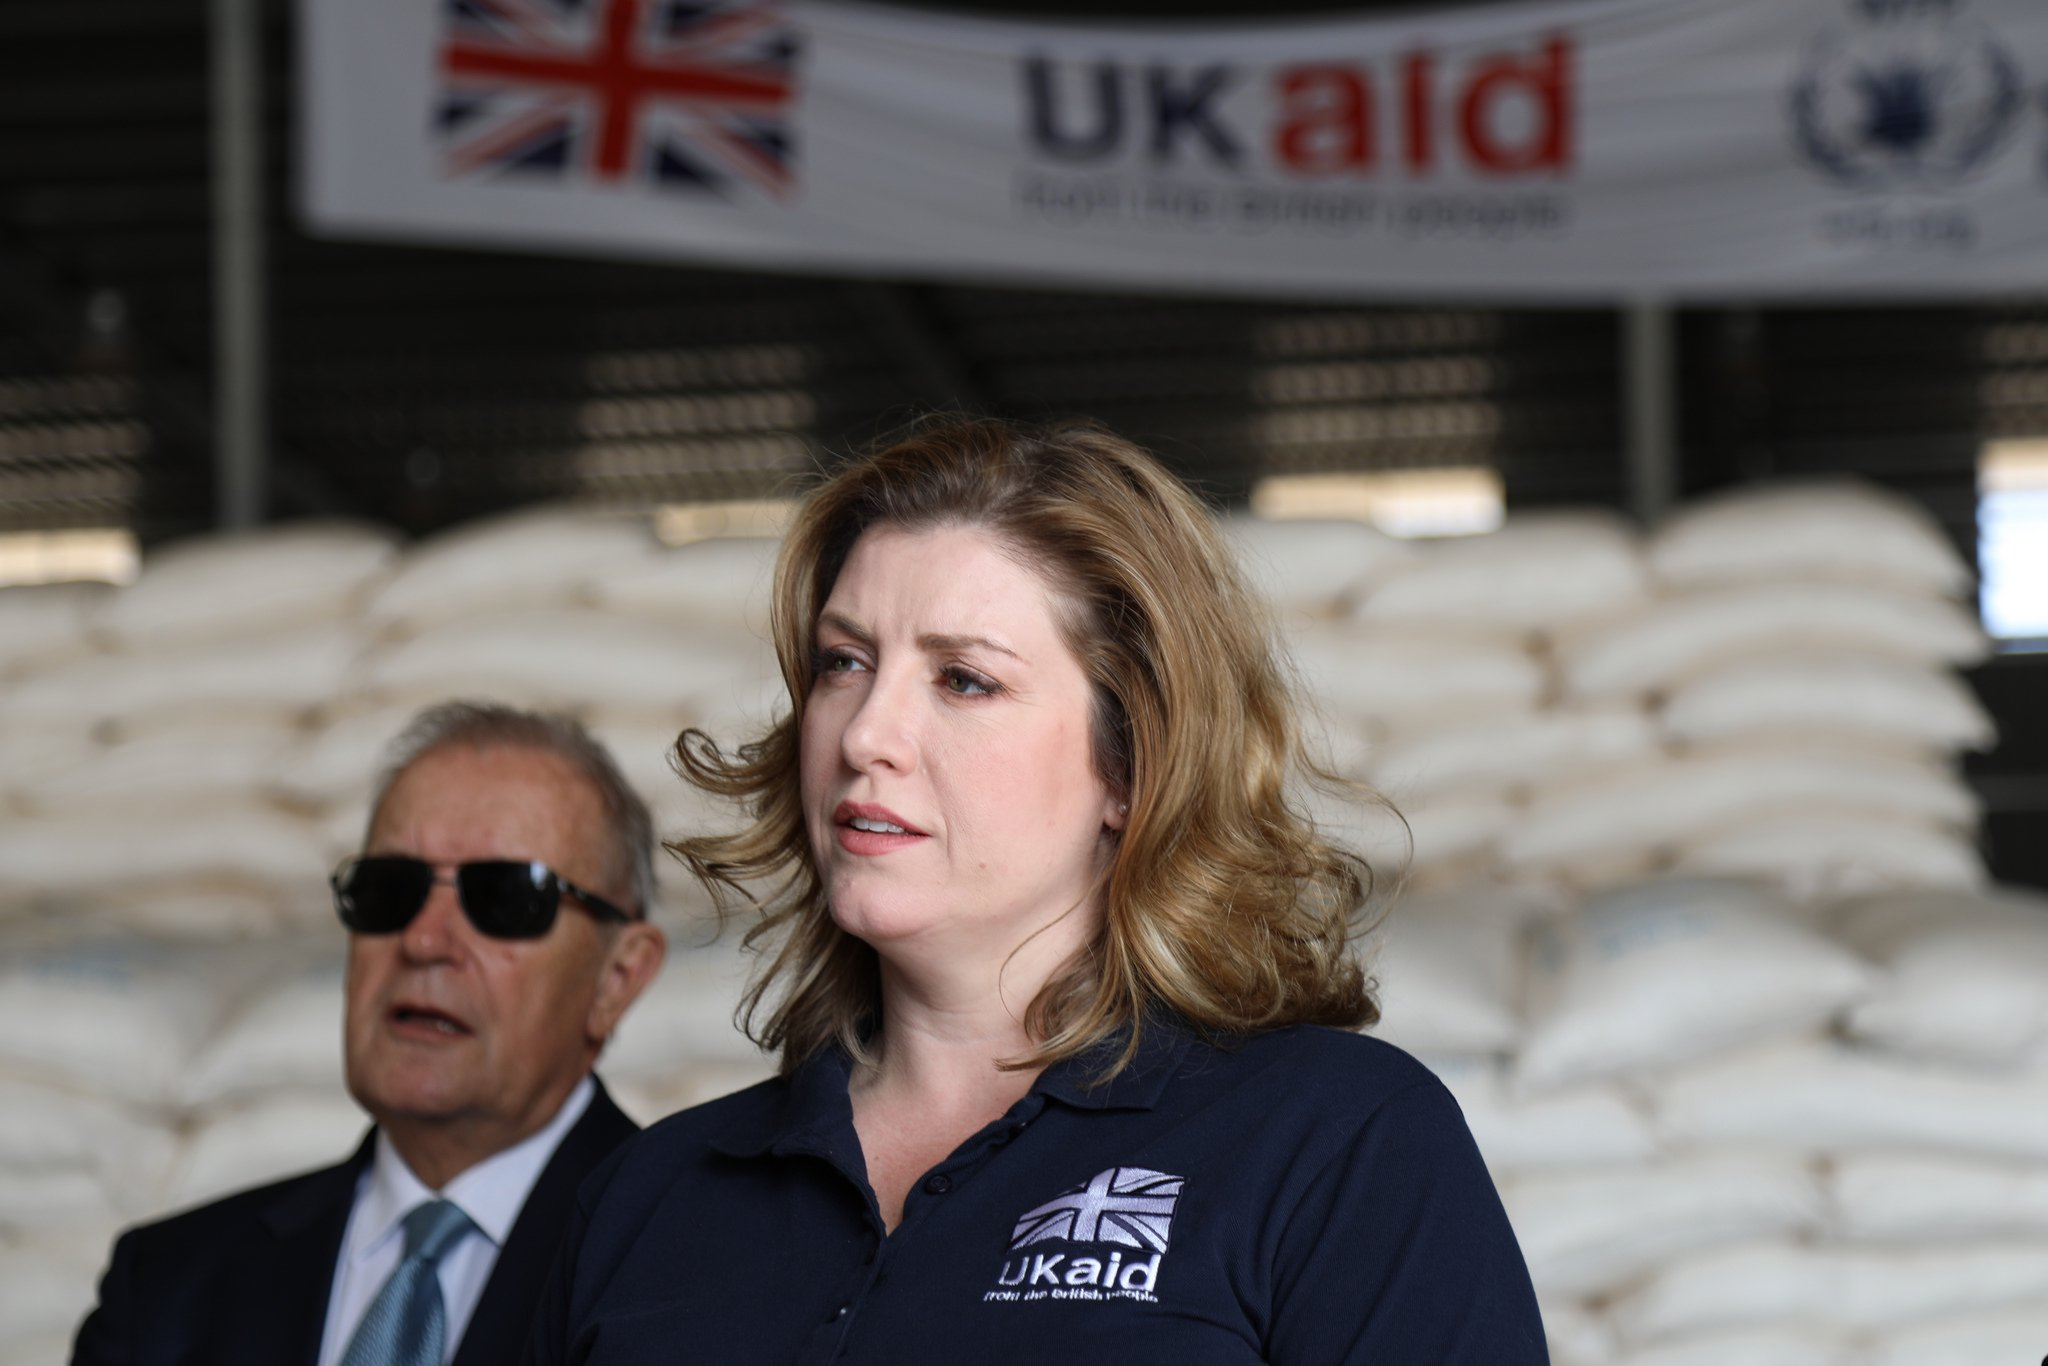 Penny mordaunt uk aid DfID Flickr